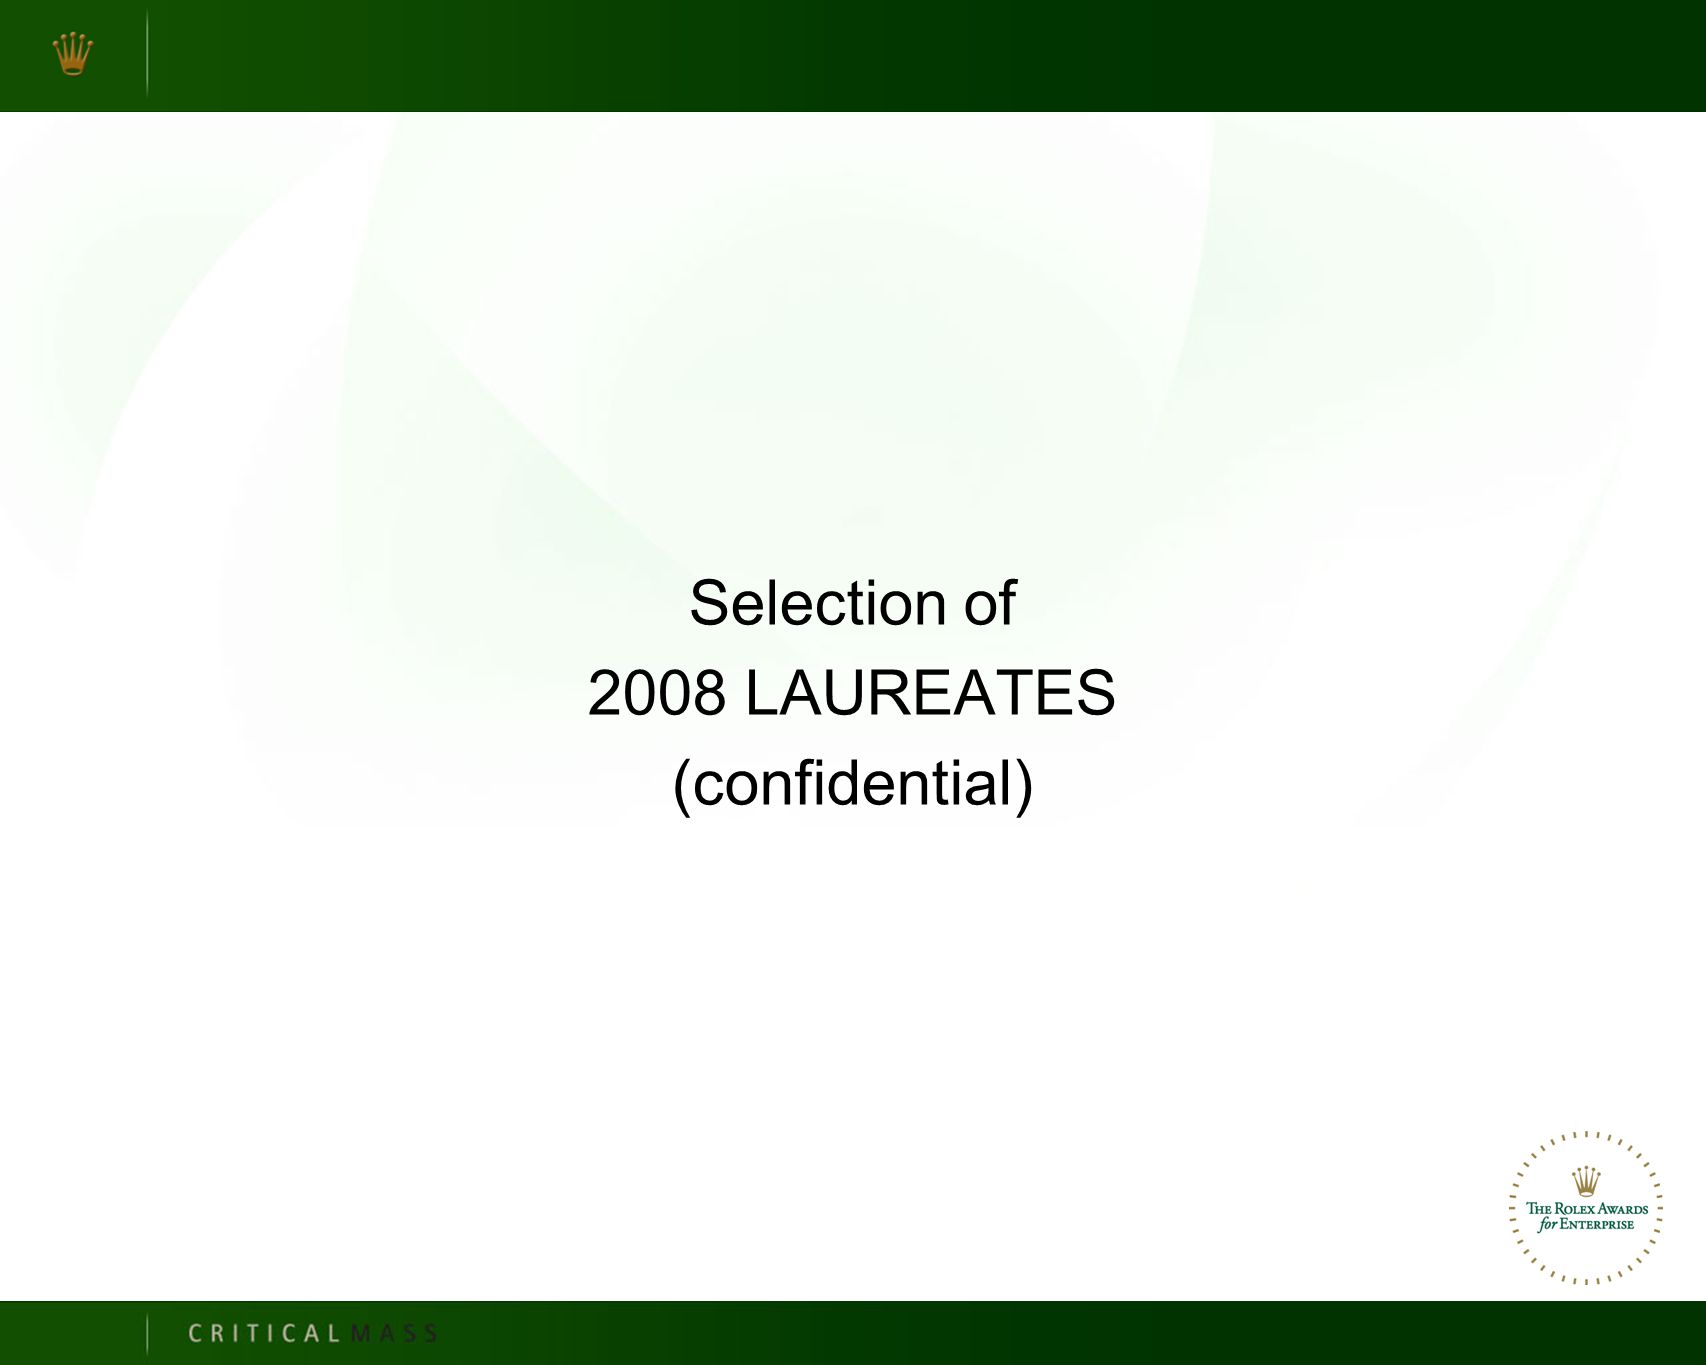 Selection of 2008 LAUREATES (confidential)